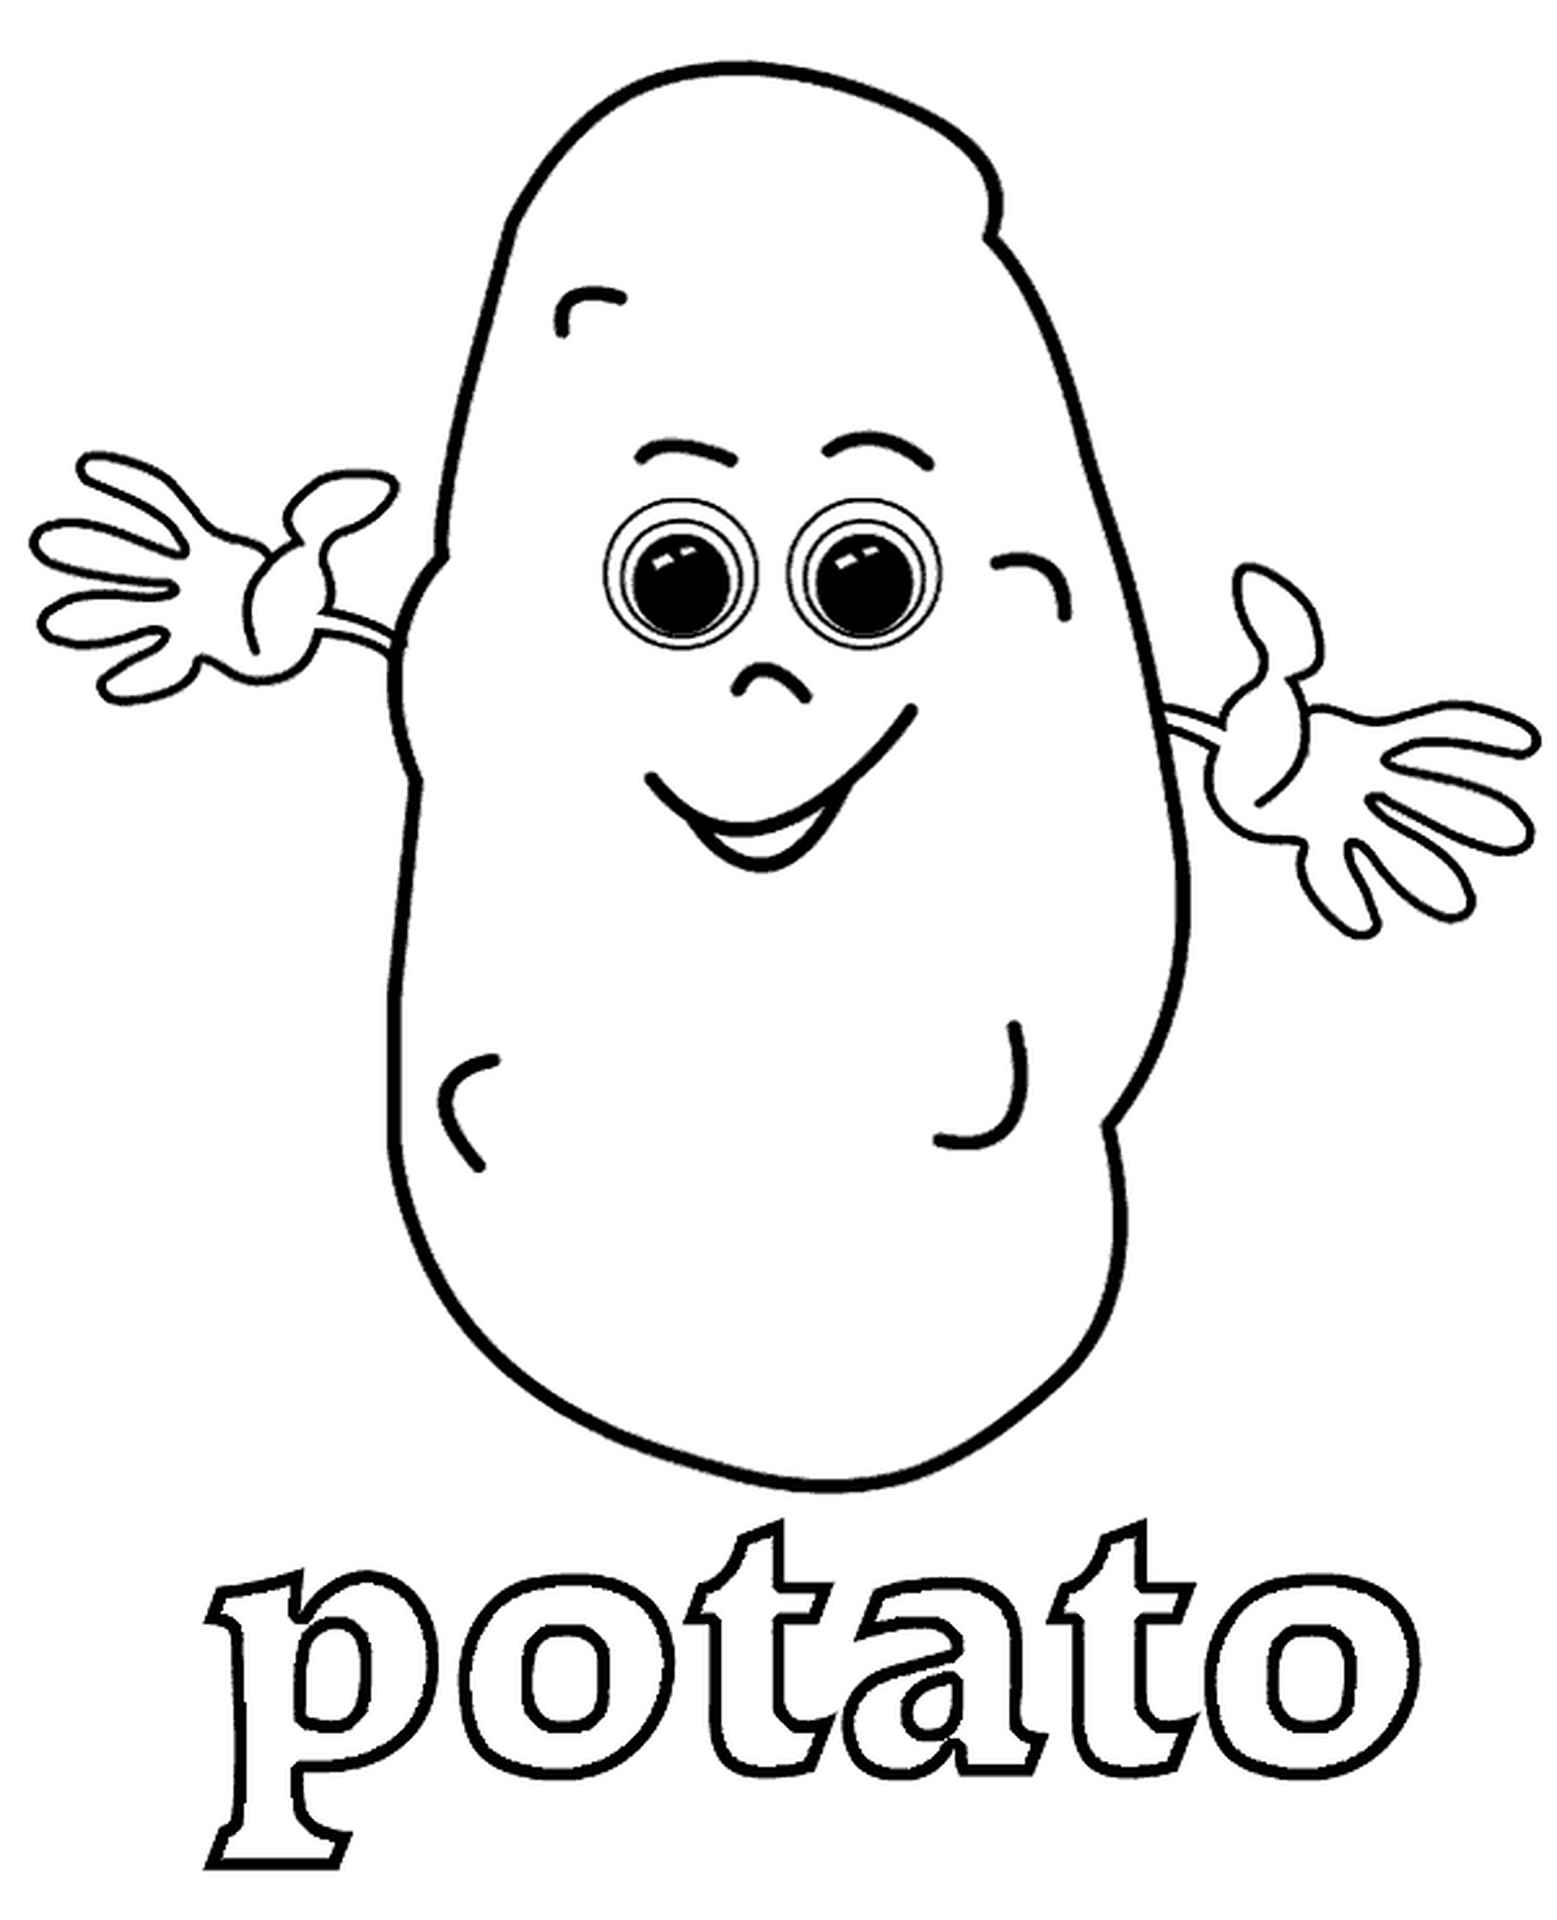 Potato Coloring Page For Kids